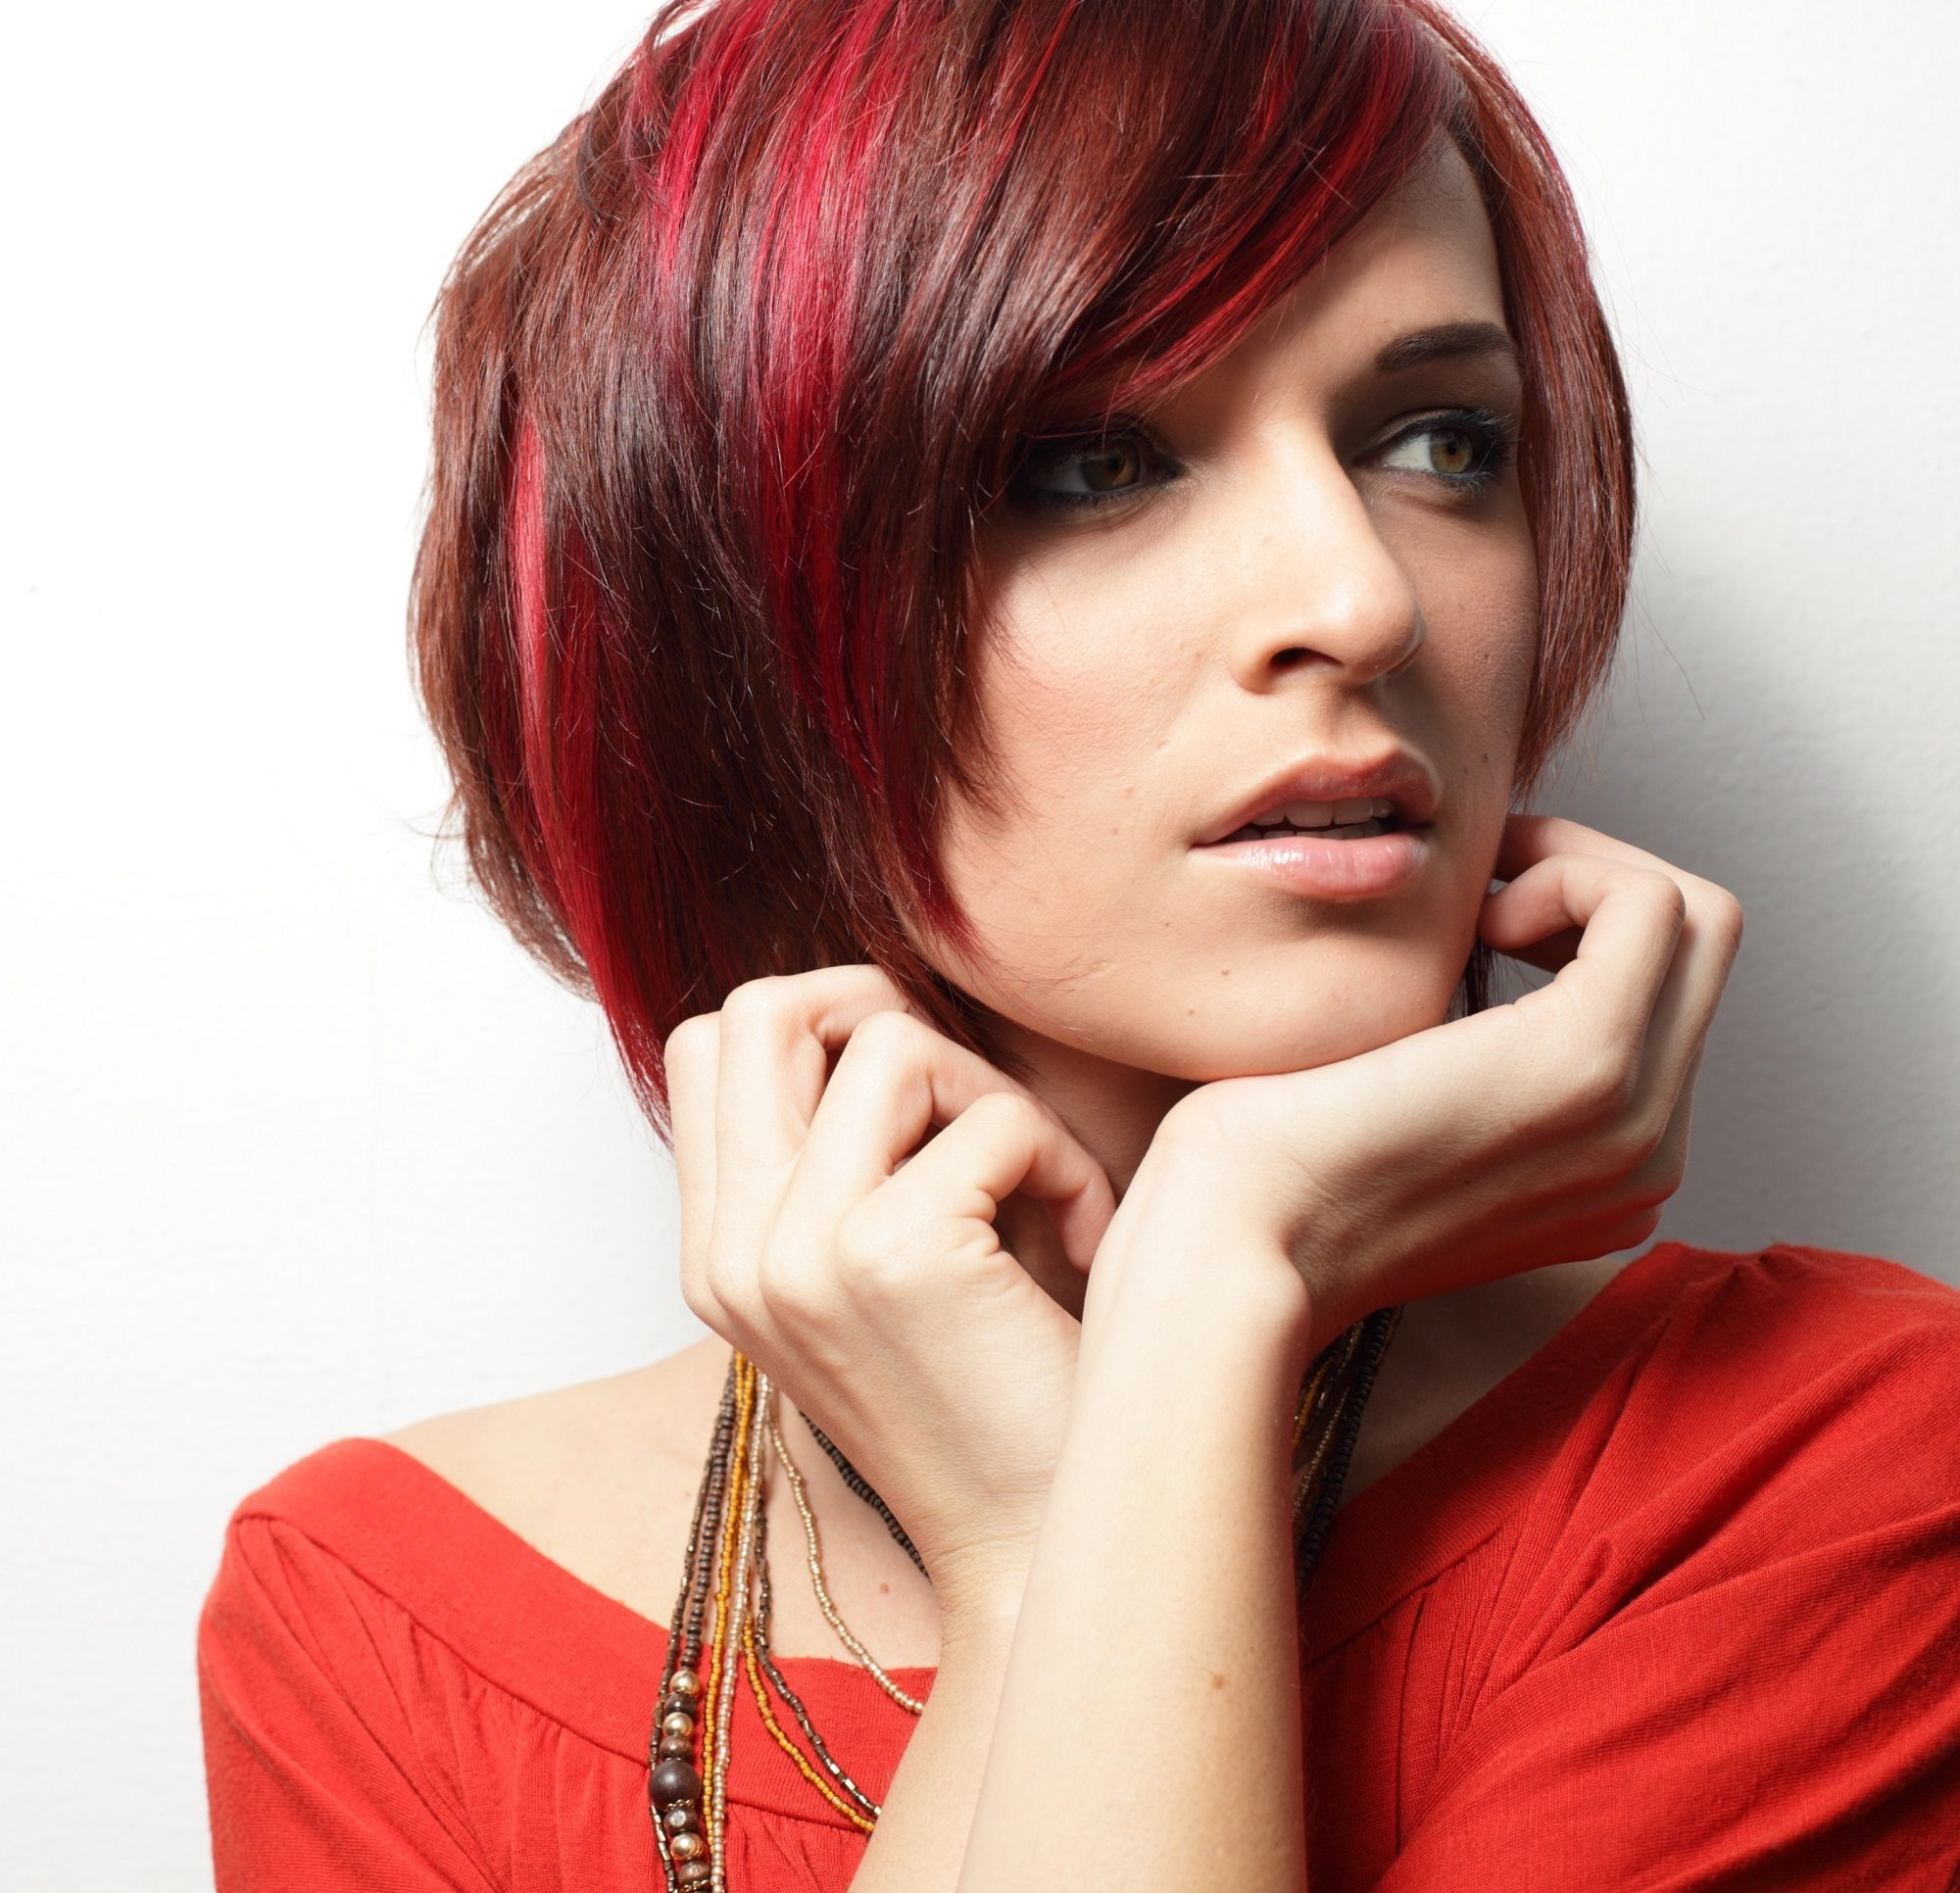 Woman wearing red orange shirt with red hair streaks on her short hair close up shot against white background